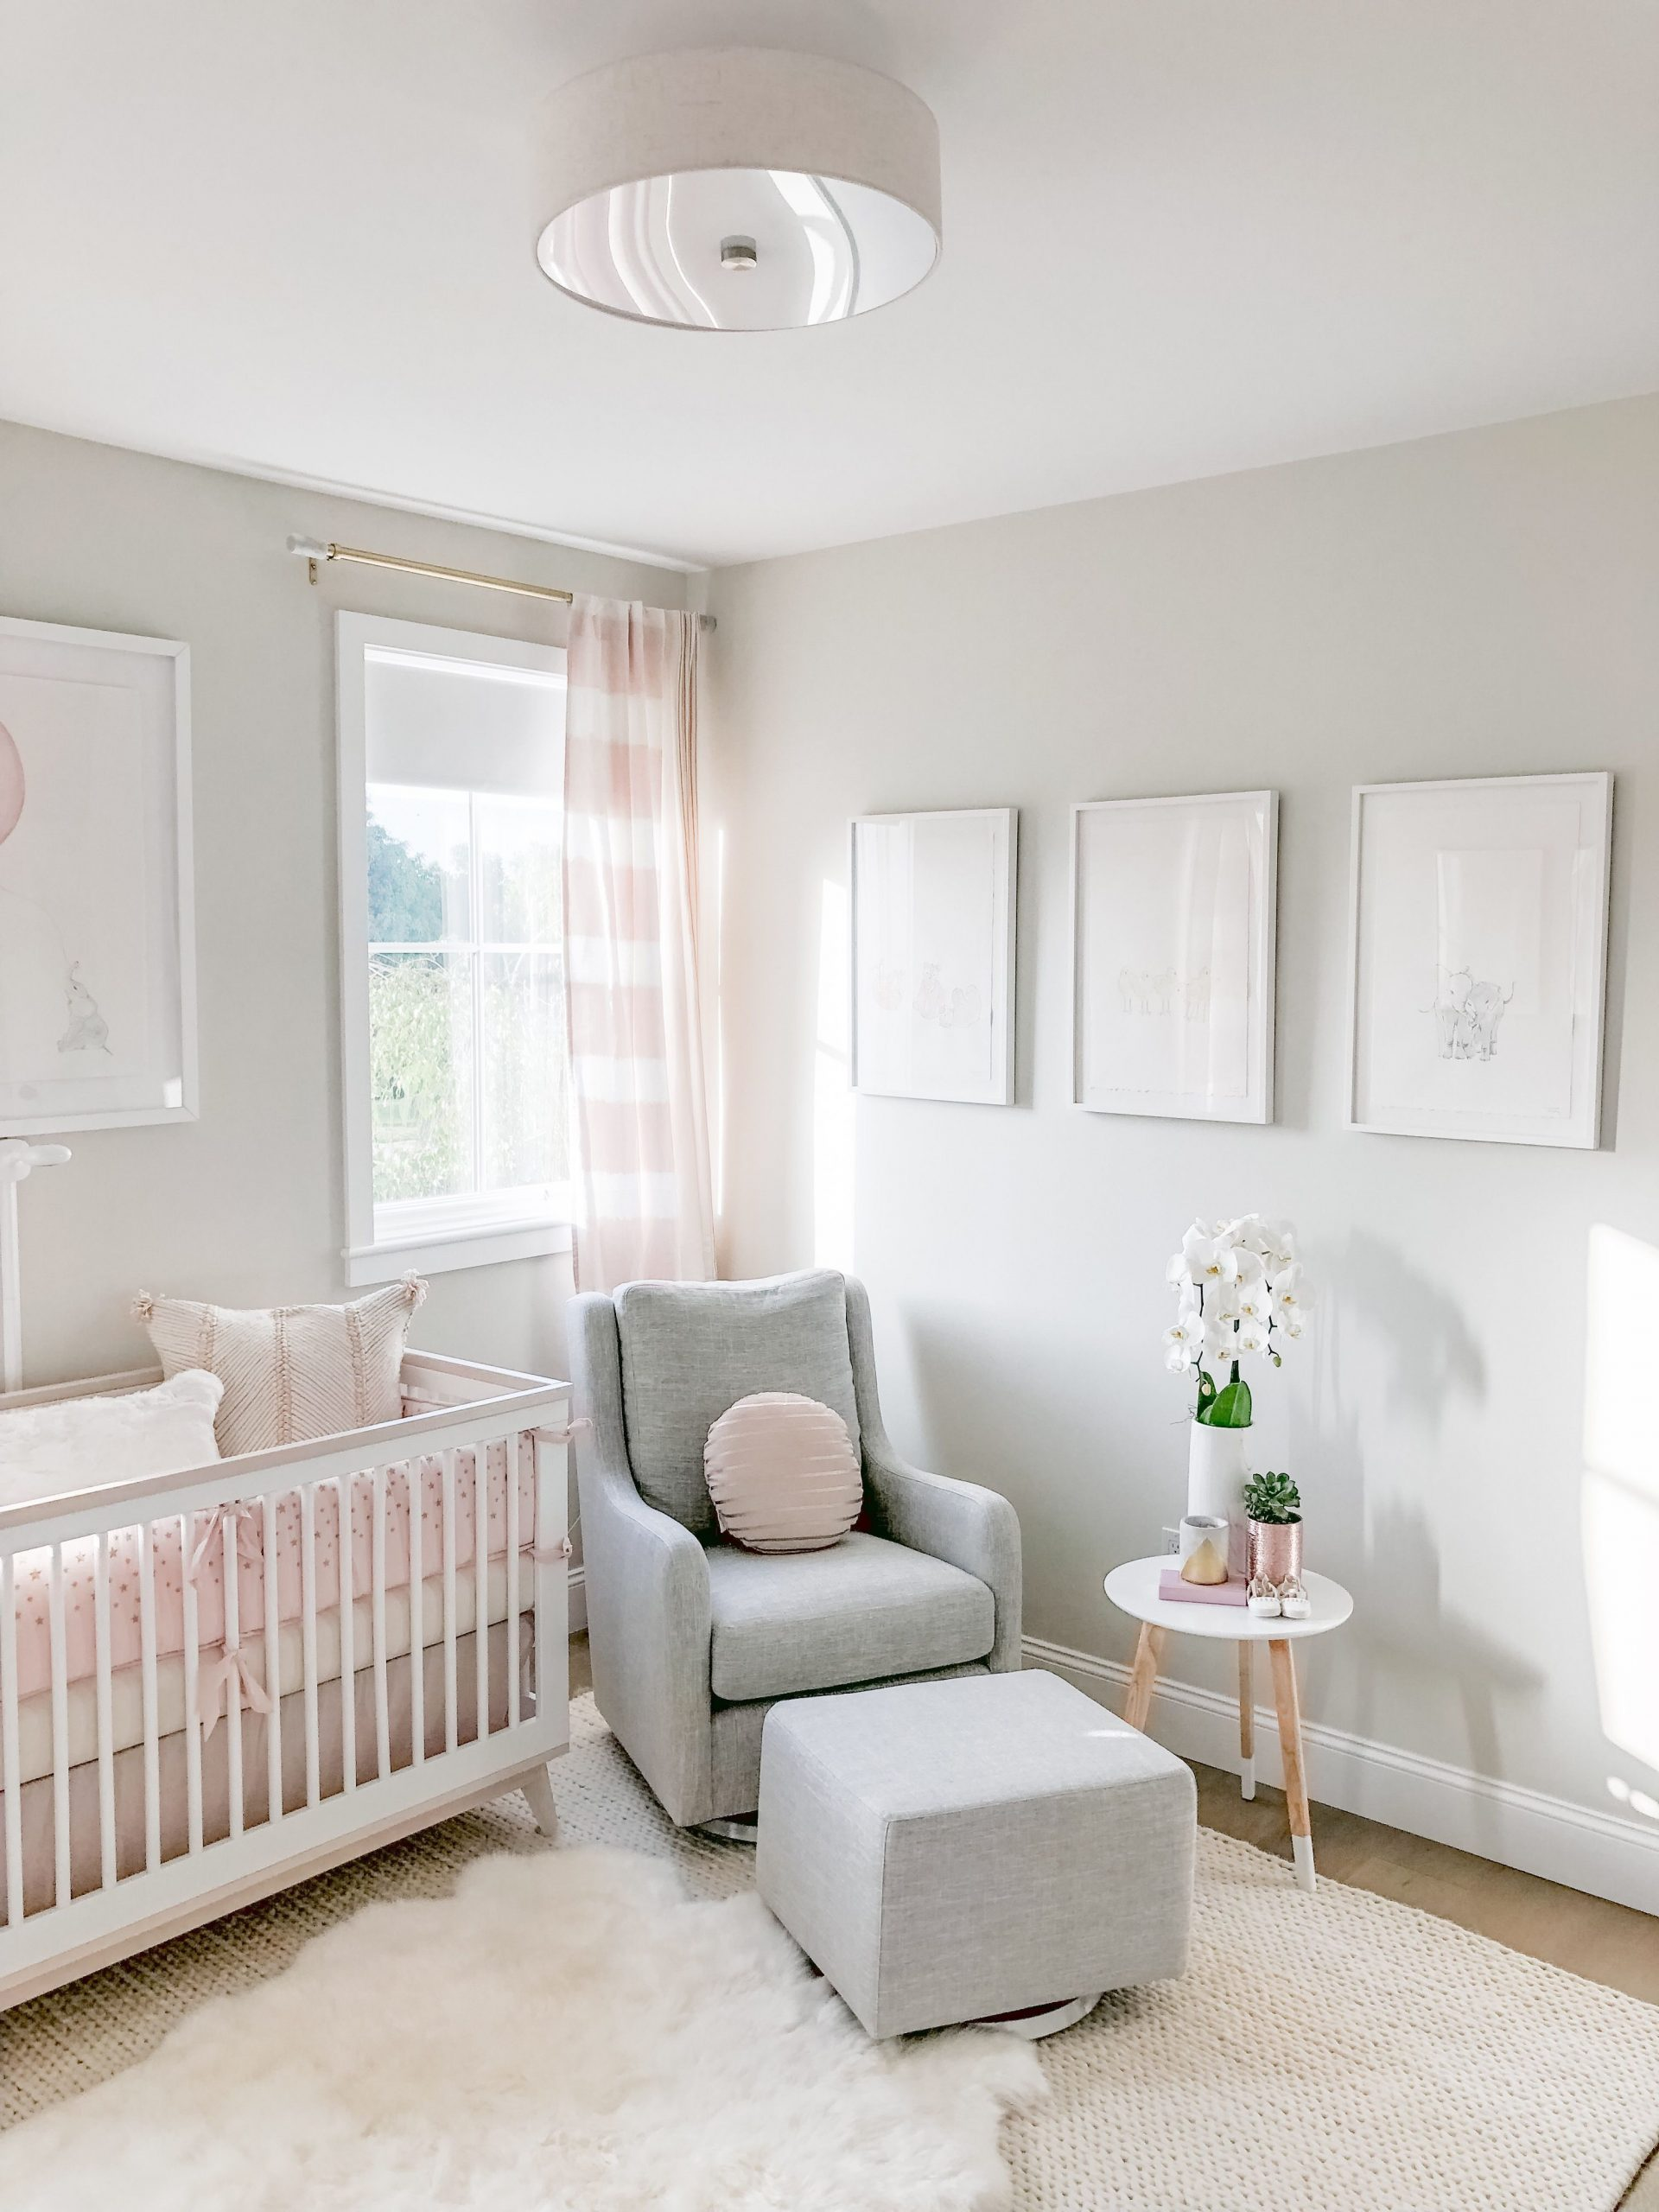 50 Inspiring Nursery Ideas for Your Baby Girl – Cute Designs You'll Love